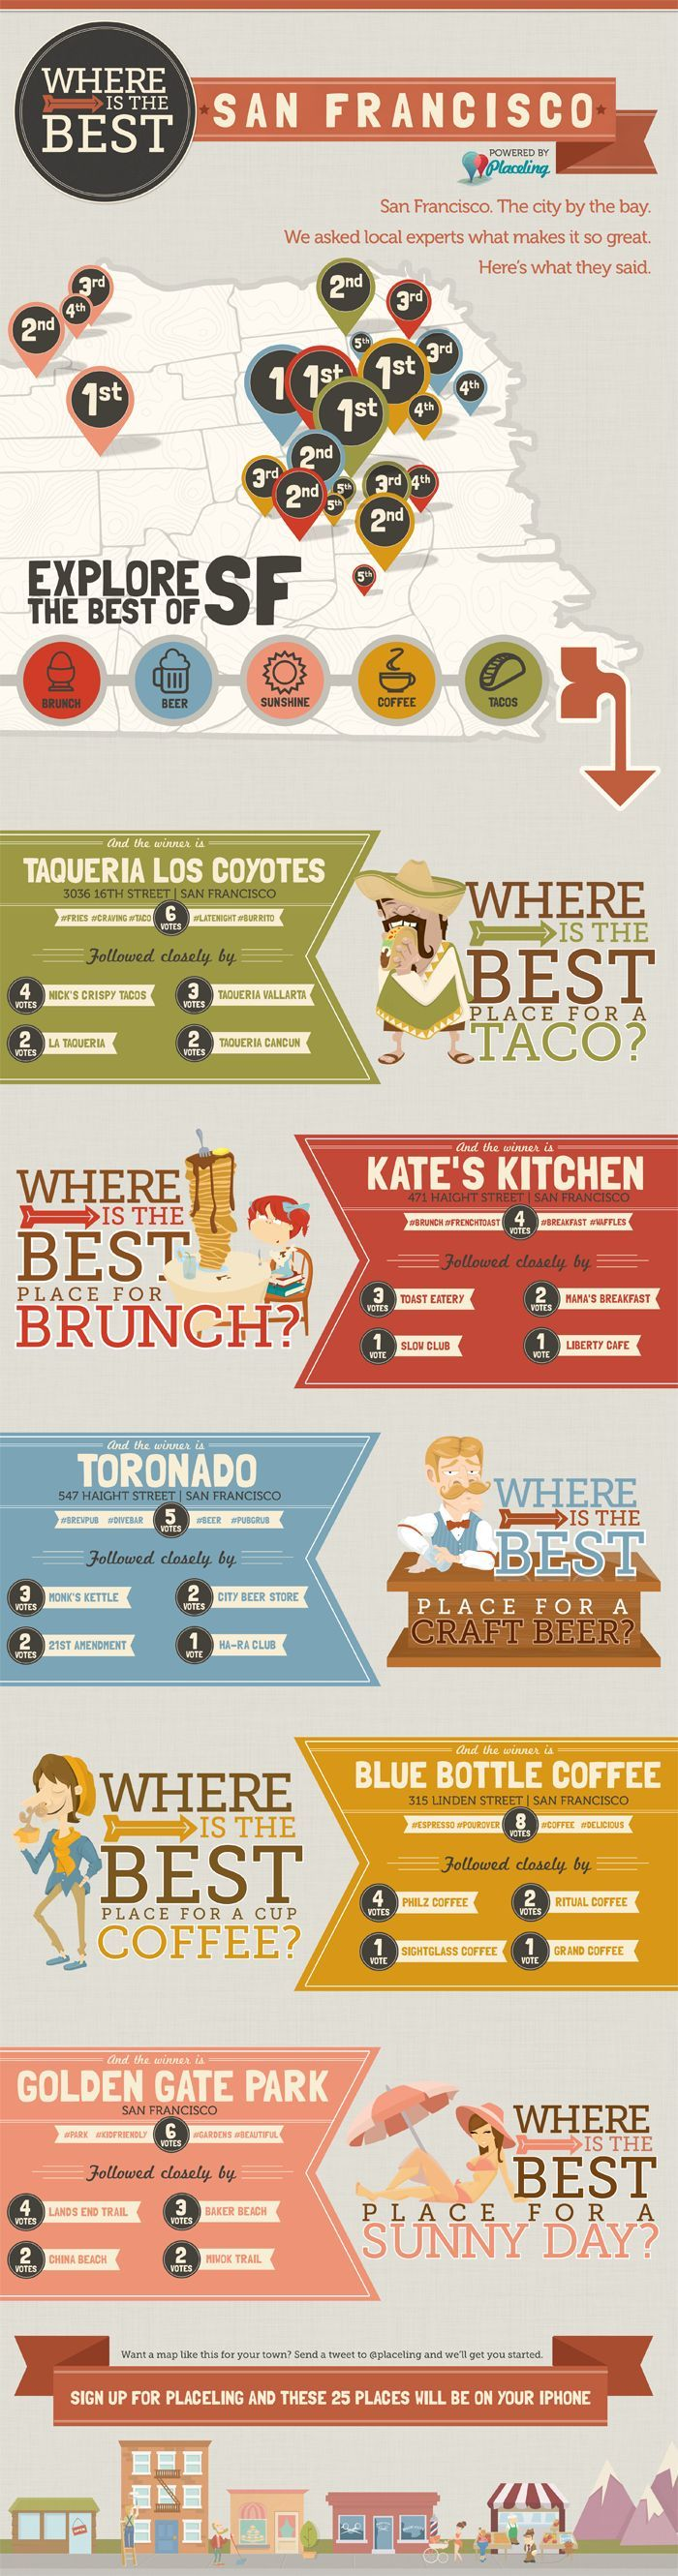 A Side Trip Before Your Napa Owner Adventure Crowdsourced Infographic Of The Best Places In San Francisco To Go On Sunny Day Or Find